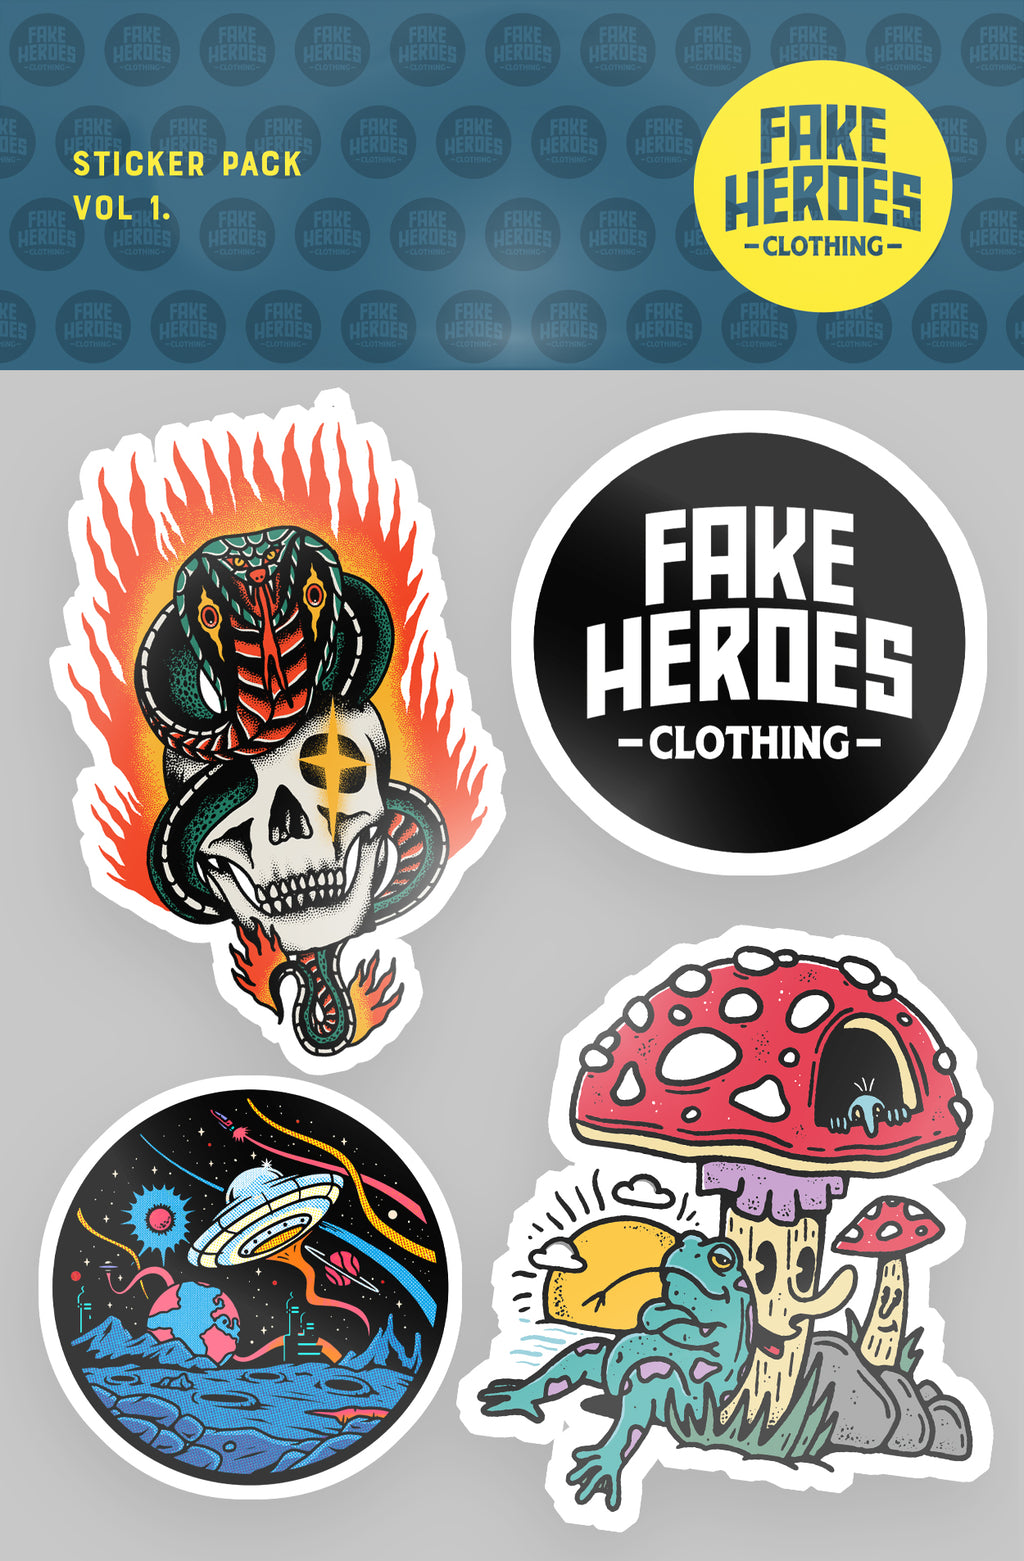 Sticker Pack Vol. 1